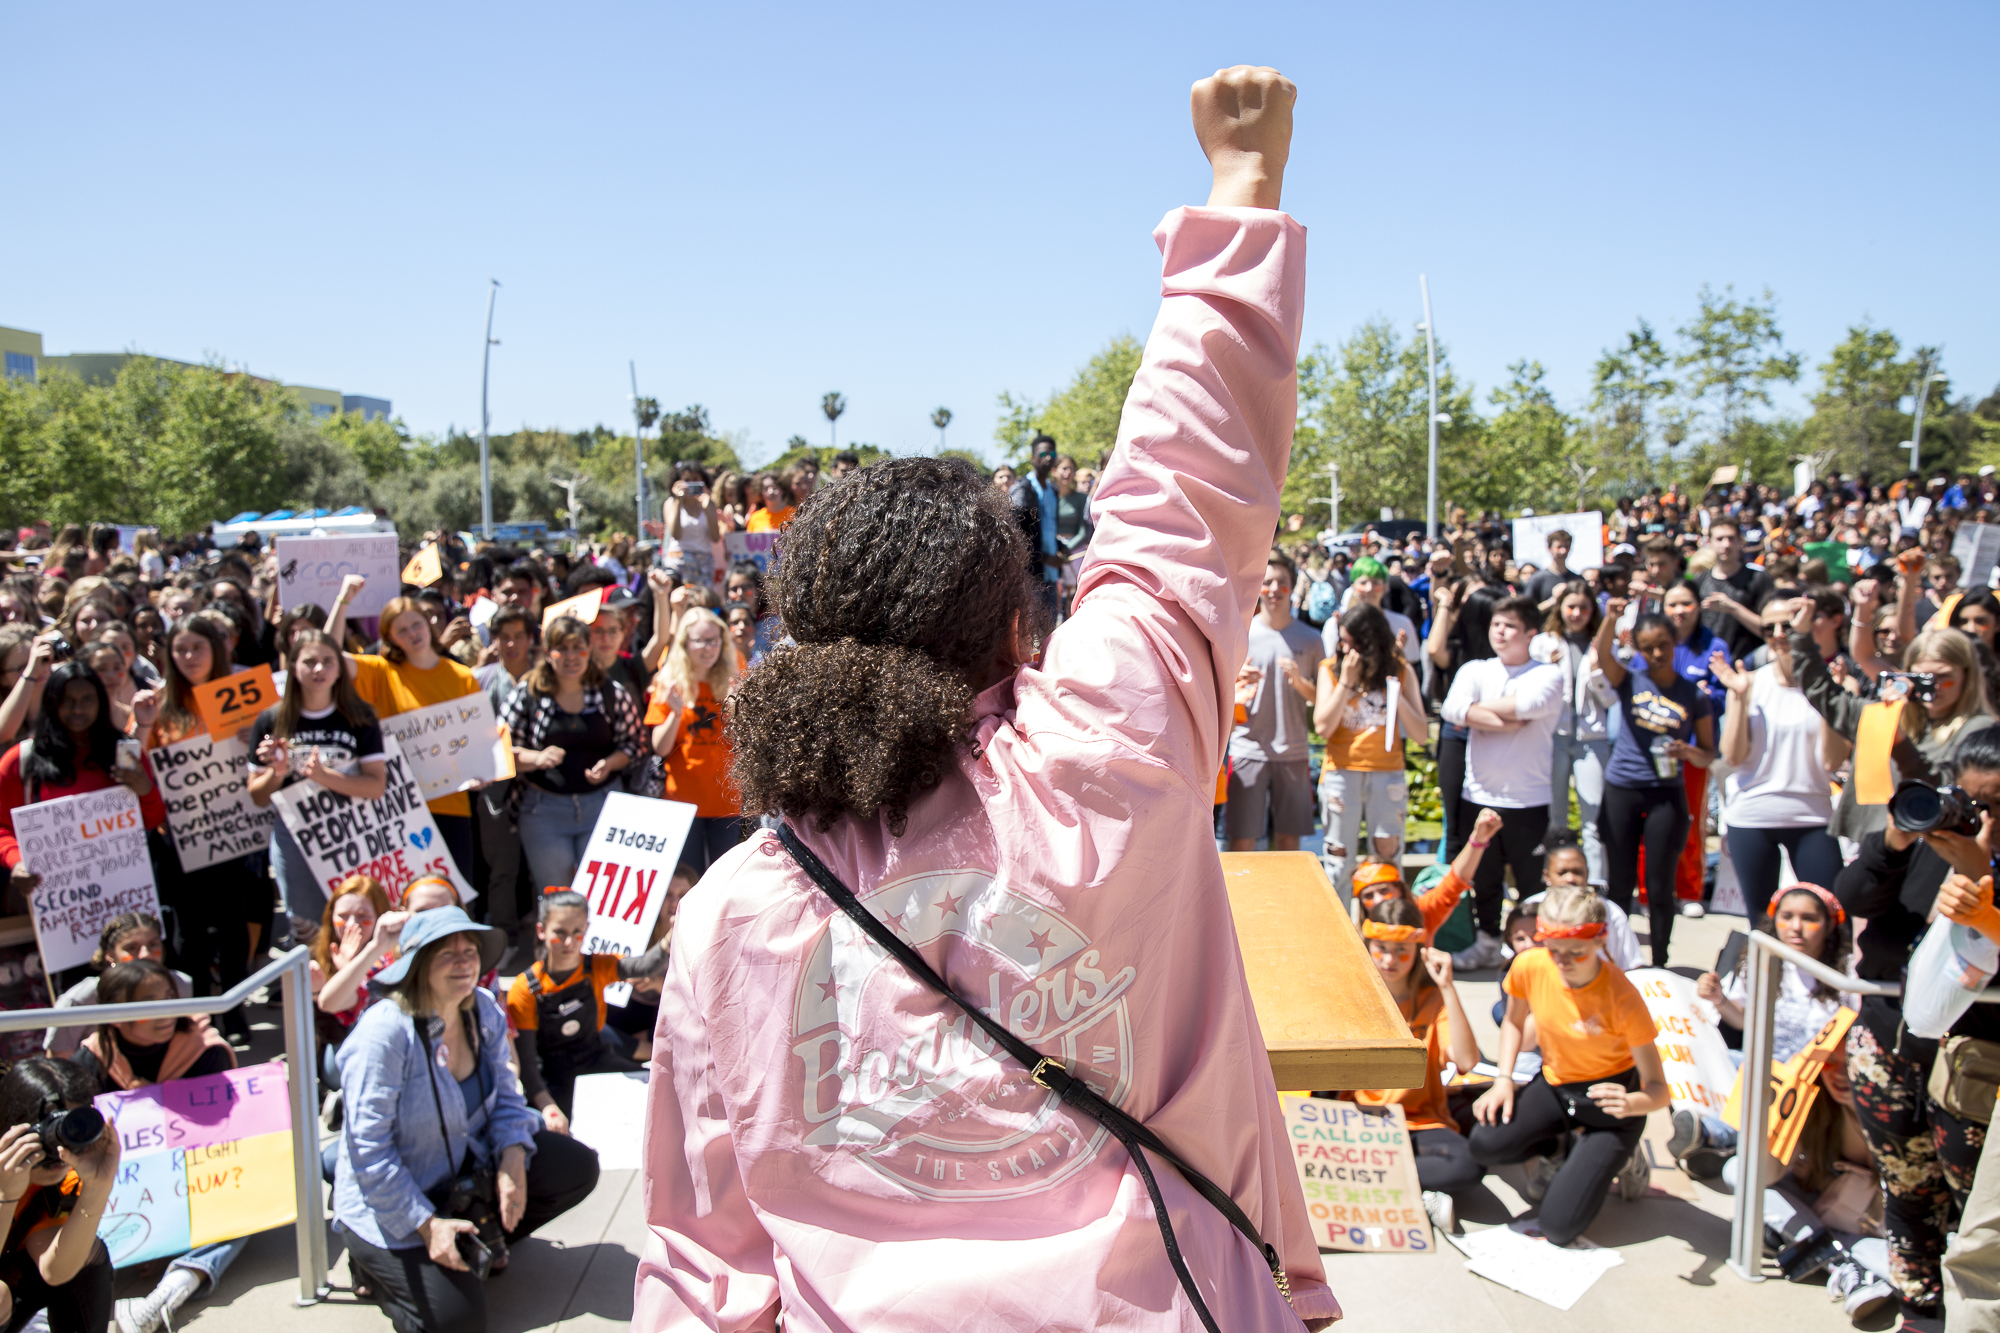 """Flora Chavez (21), one of the key speakers during the student walkout that converged at Santa Monica City Hall sings a song she wrote entitled, """"Peace Love Unity"""" to those in attendance in Santa Monica California, on Friday, April 20 2018. Several hundred students from area high schools and middle schools converged on Santa Monica City Hall in protest against all forms of gun violence, marking also the 19th anniversary of the Columbine High School massacre. (Matthew Martin/Corsair Photo)"""